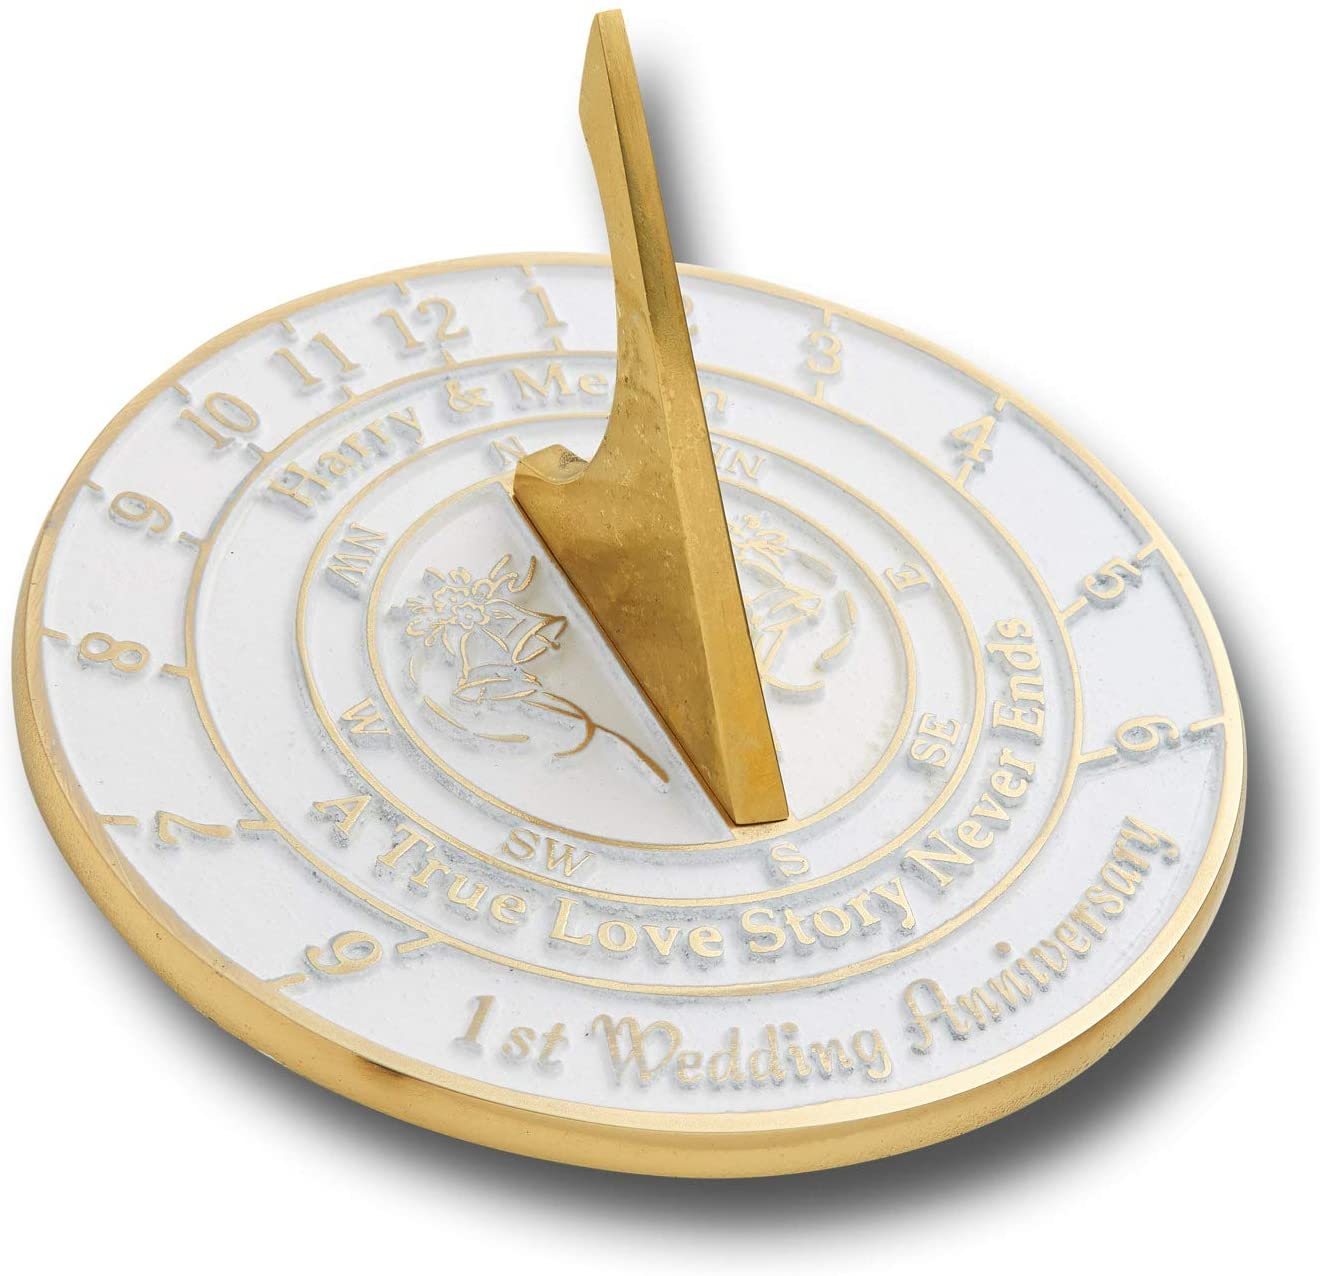 The Metal Foundry Personalized First Wedding Anniversary Sundial Gift Idea is A Great Present for Him, for Her Or for A Couple to Celebrate 1 Year of Marriage